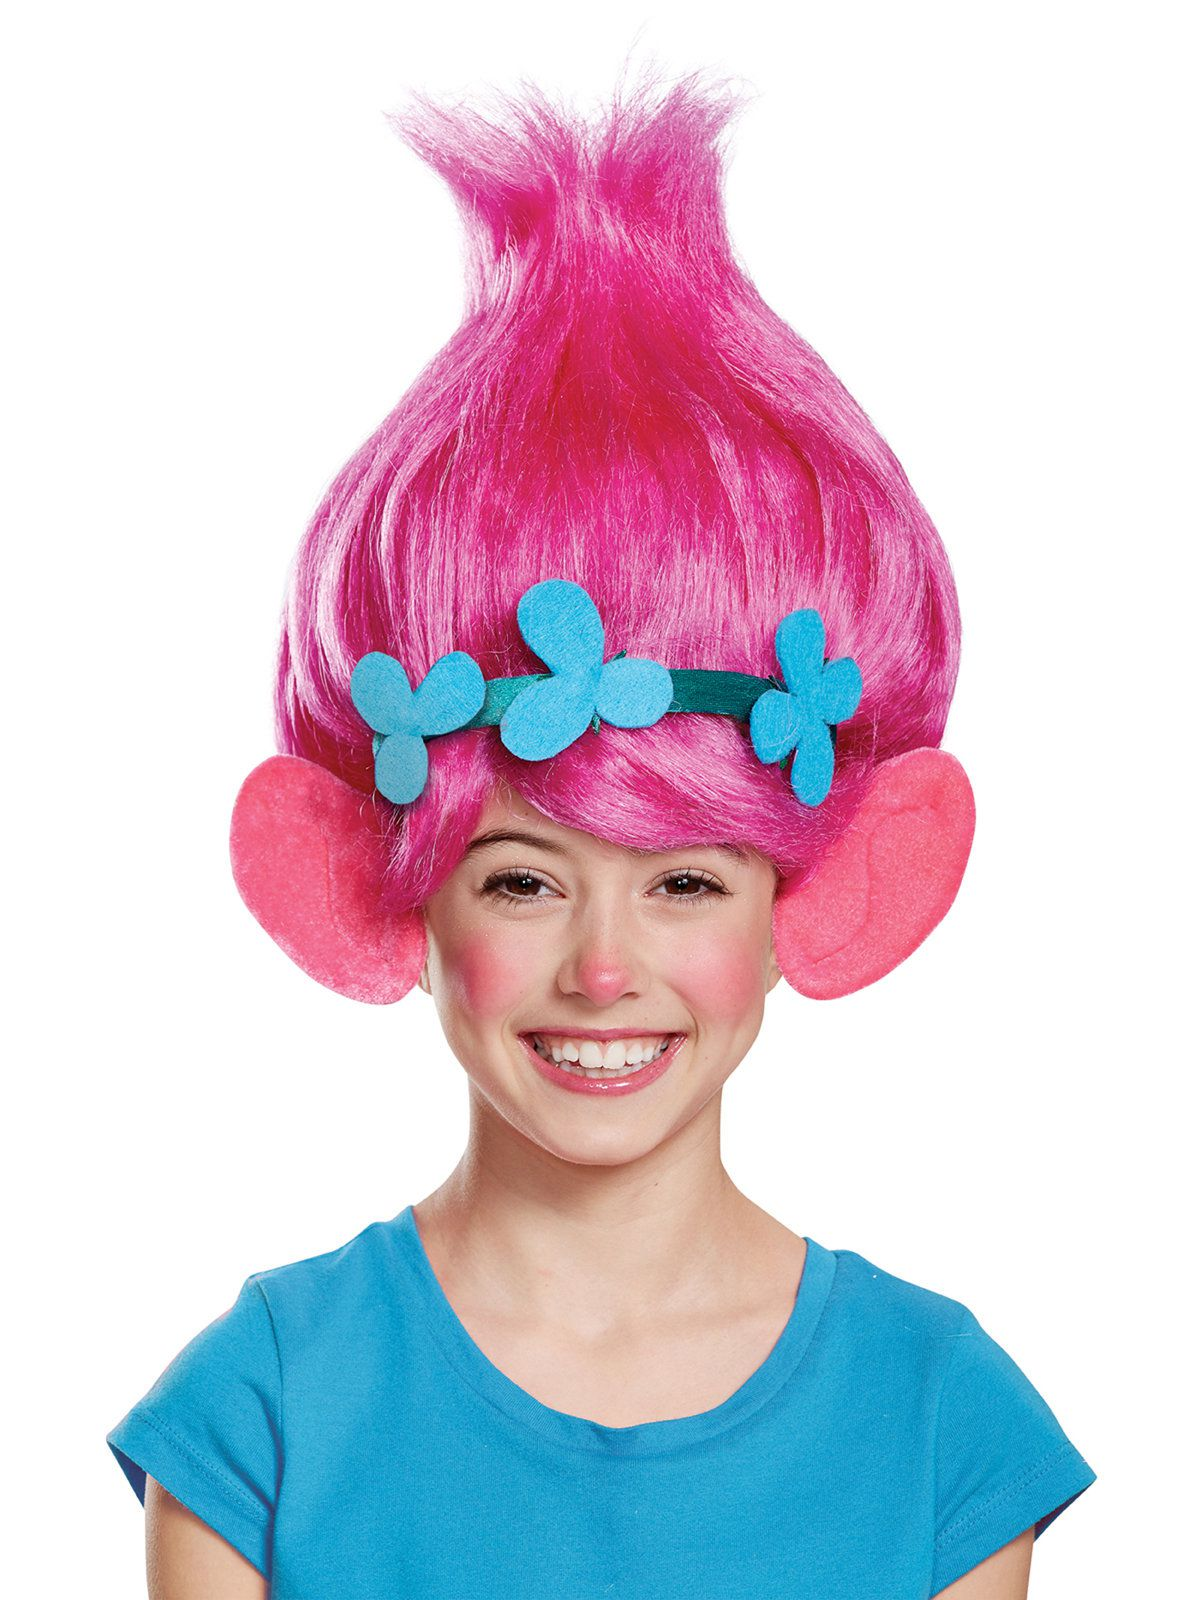 Trolls Poppy Child Wig Costume Accessories For 2018 Wholesale